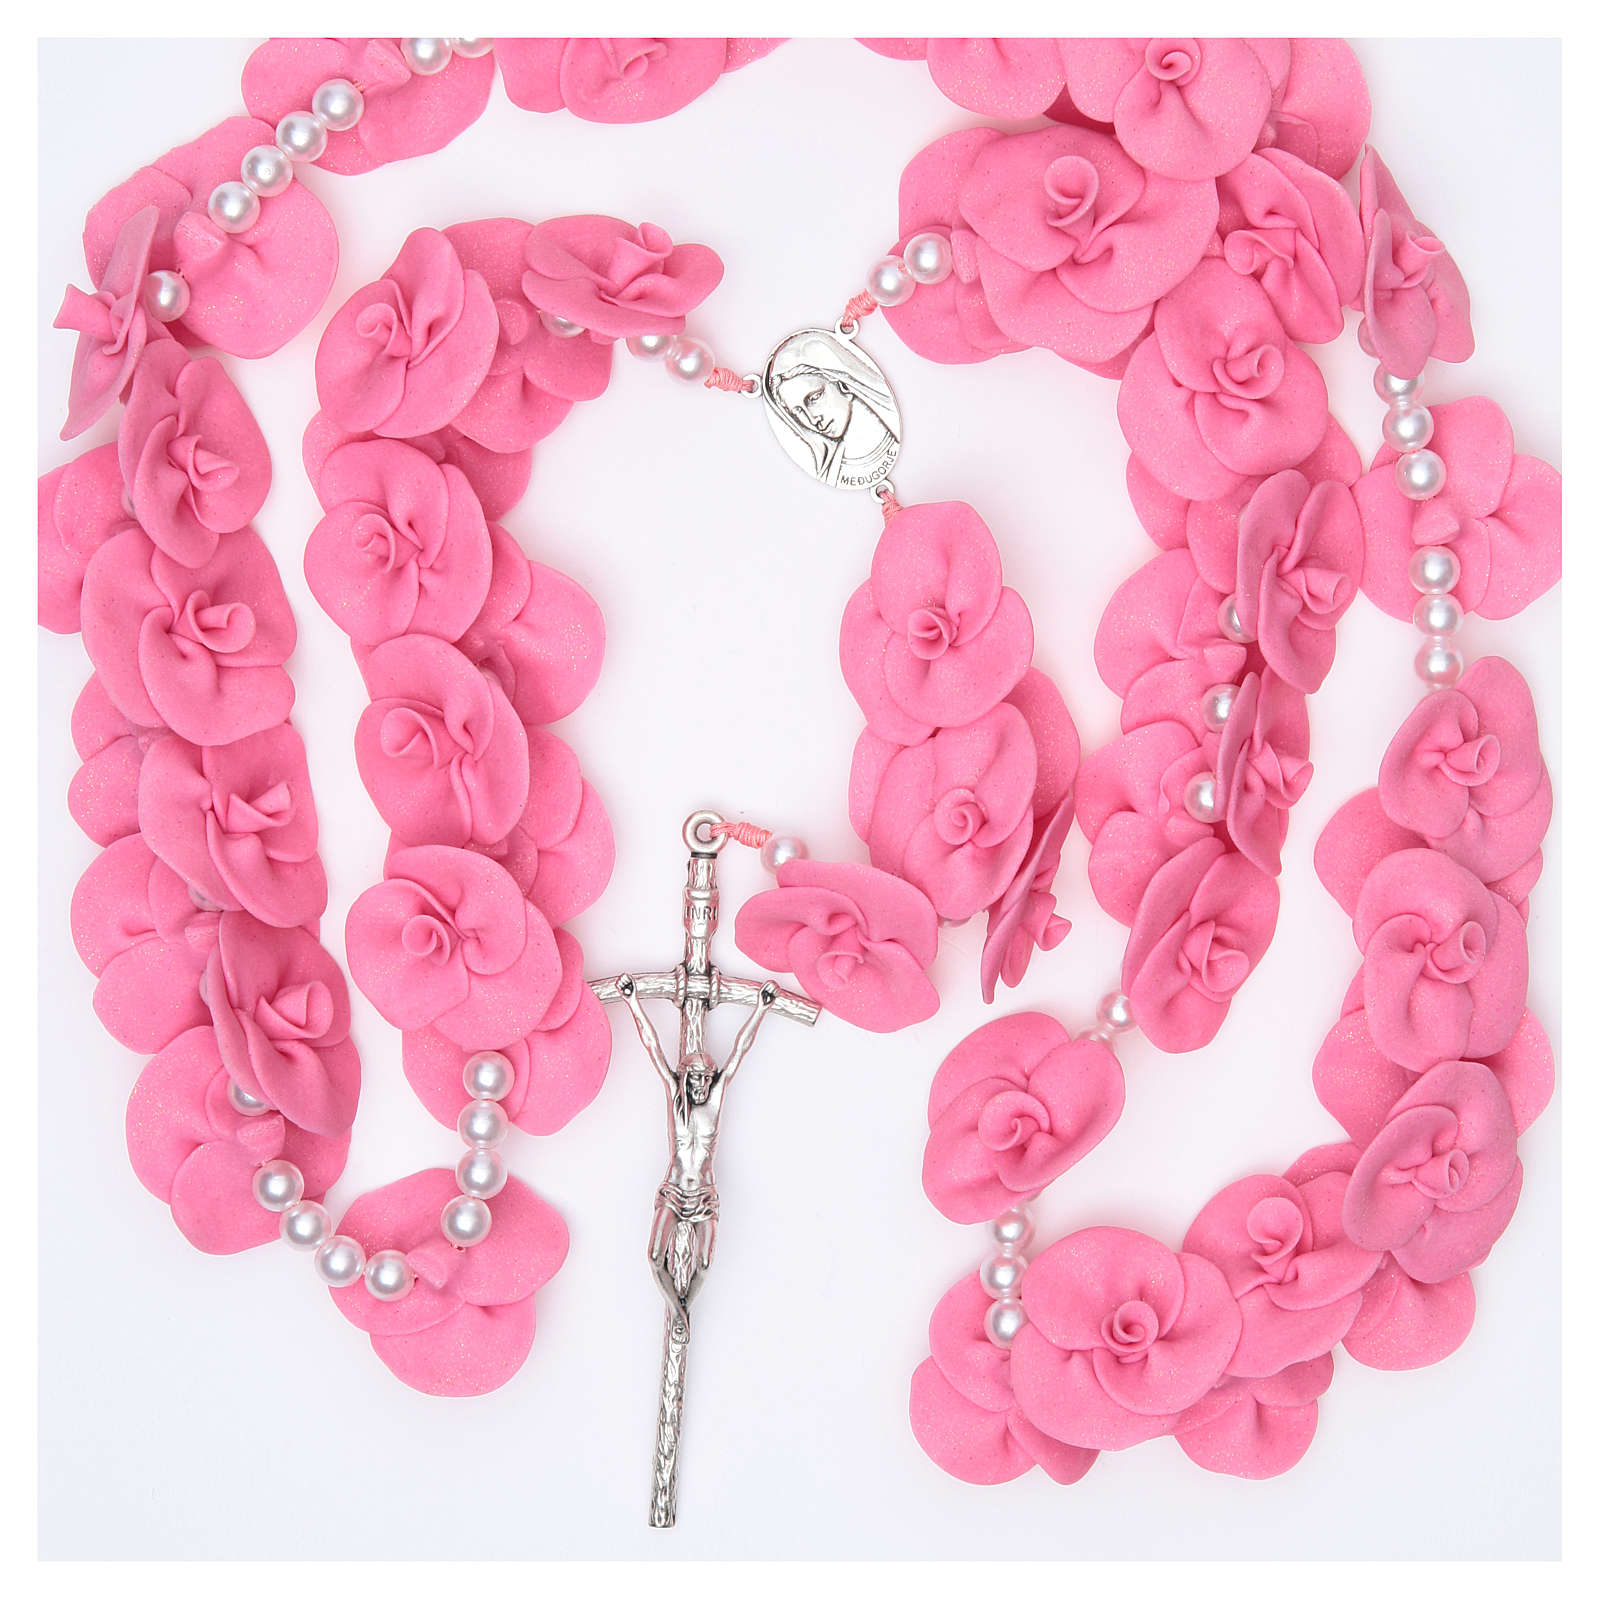 Medjugorje wall rosary with dark pink roses 4